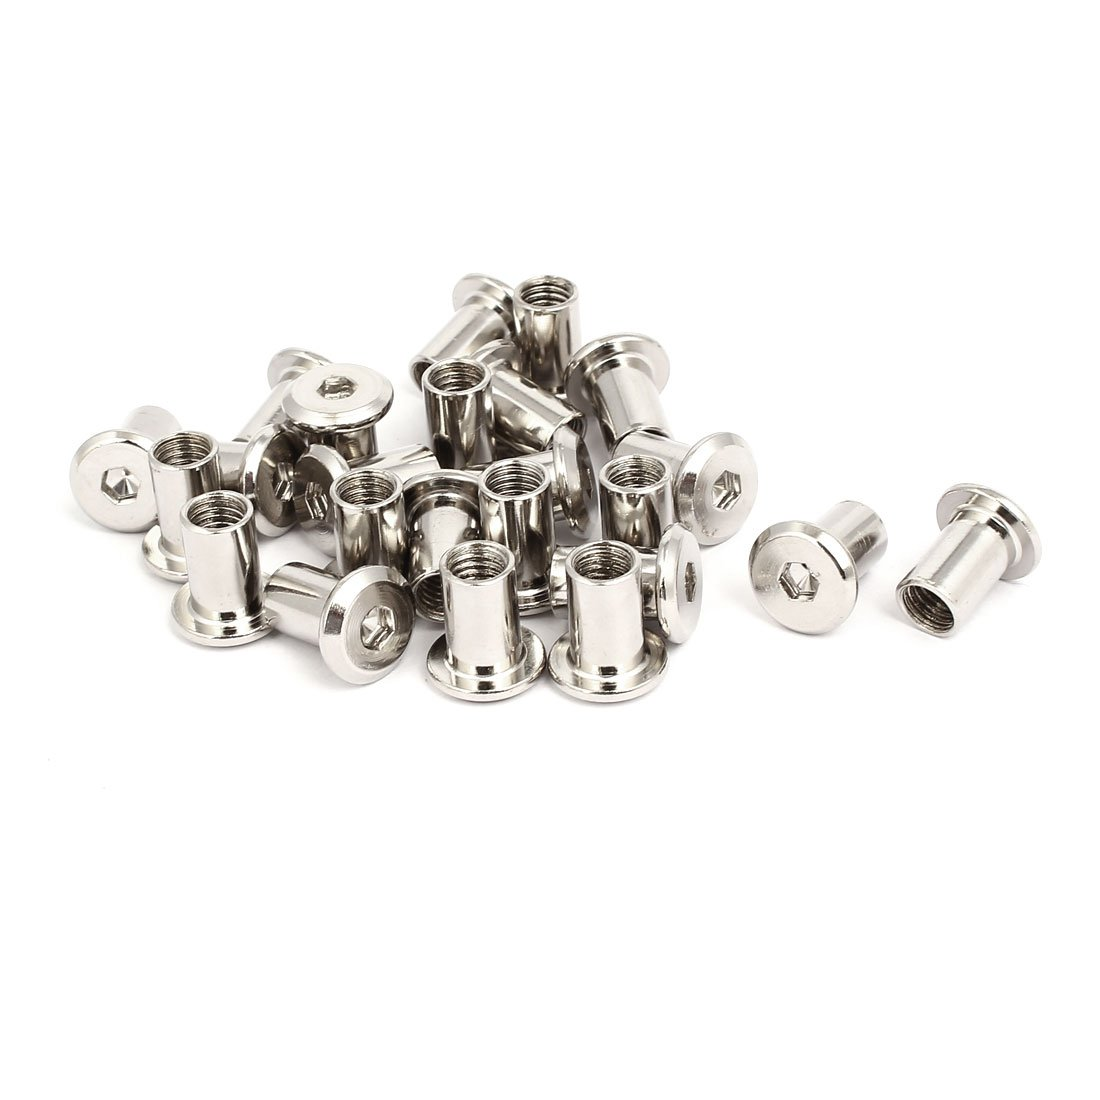 uxcell M8x15mm Female Thread Hex Socket Head Barrel Nut Furniture Fittings 24pcs